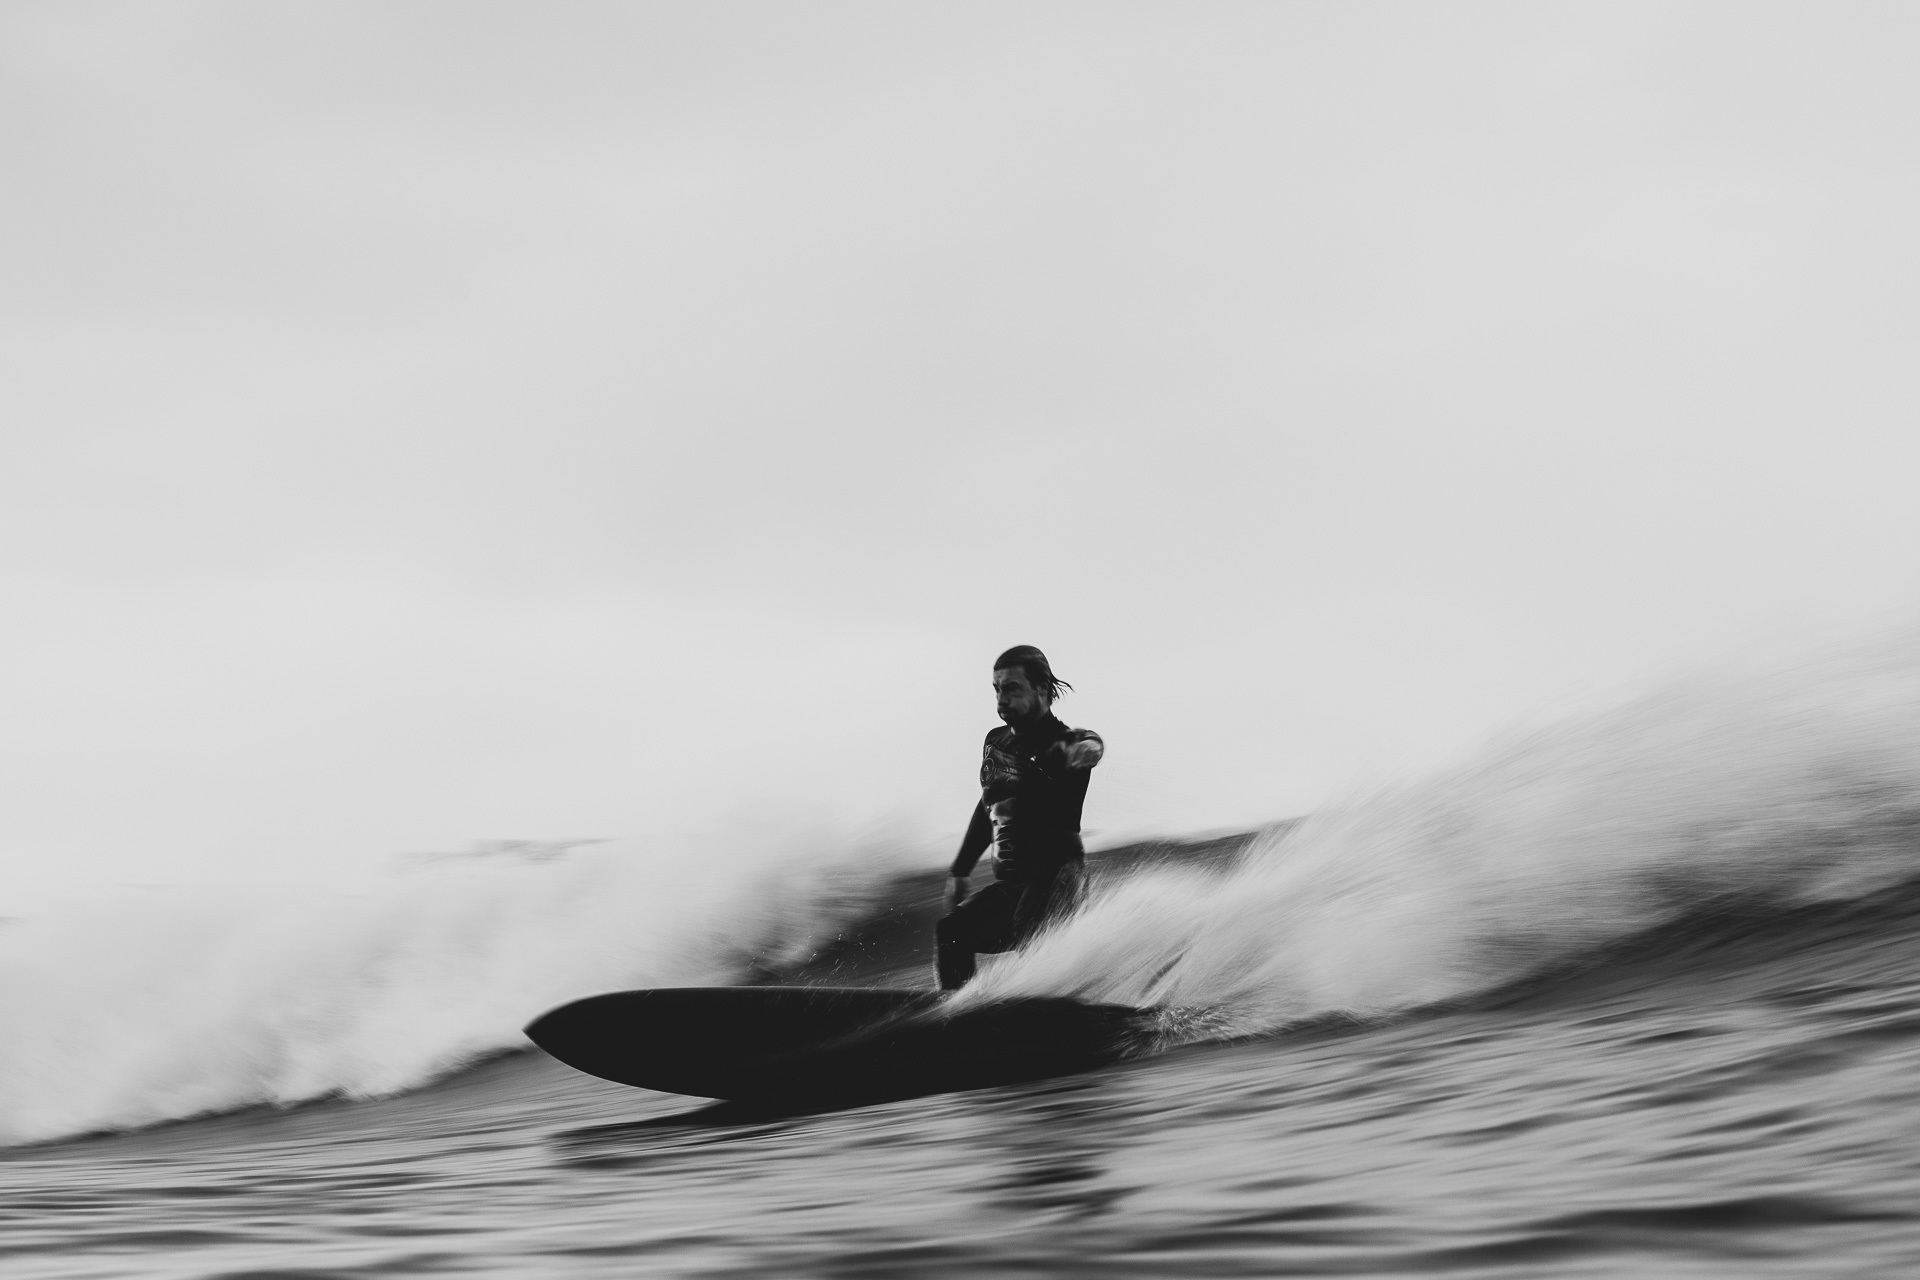 Sea to Summit in Australia – All In A Day's Work, guy williment, surfing, nsw